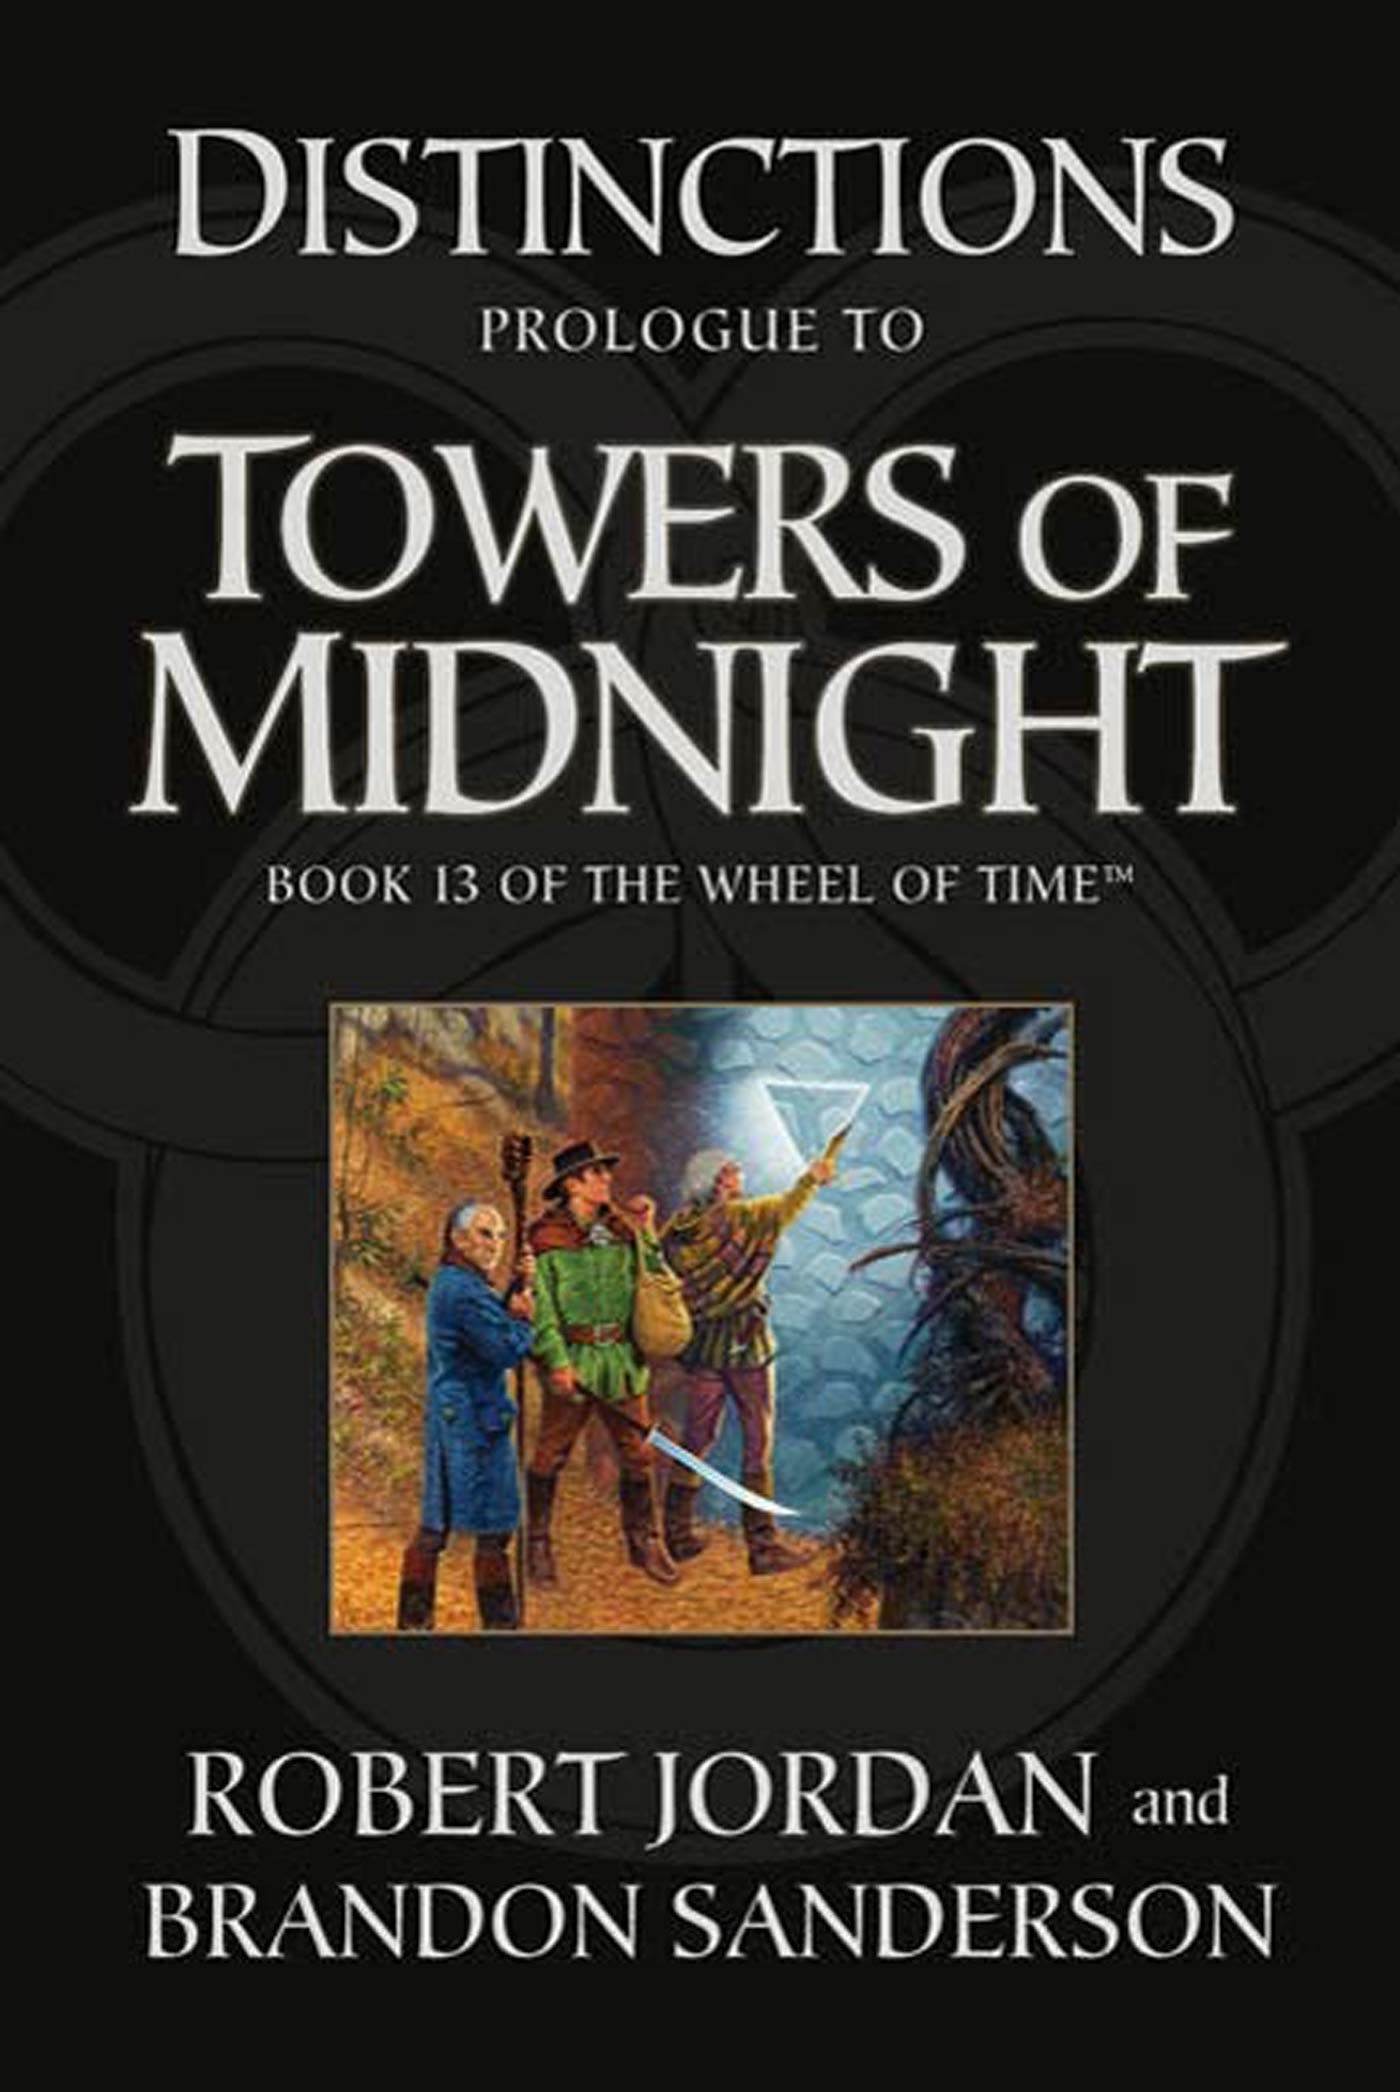 Image of Distinctions: Prologue to Towers of Midnight